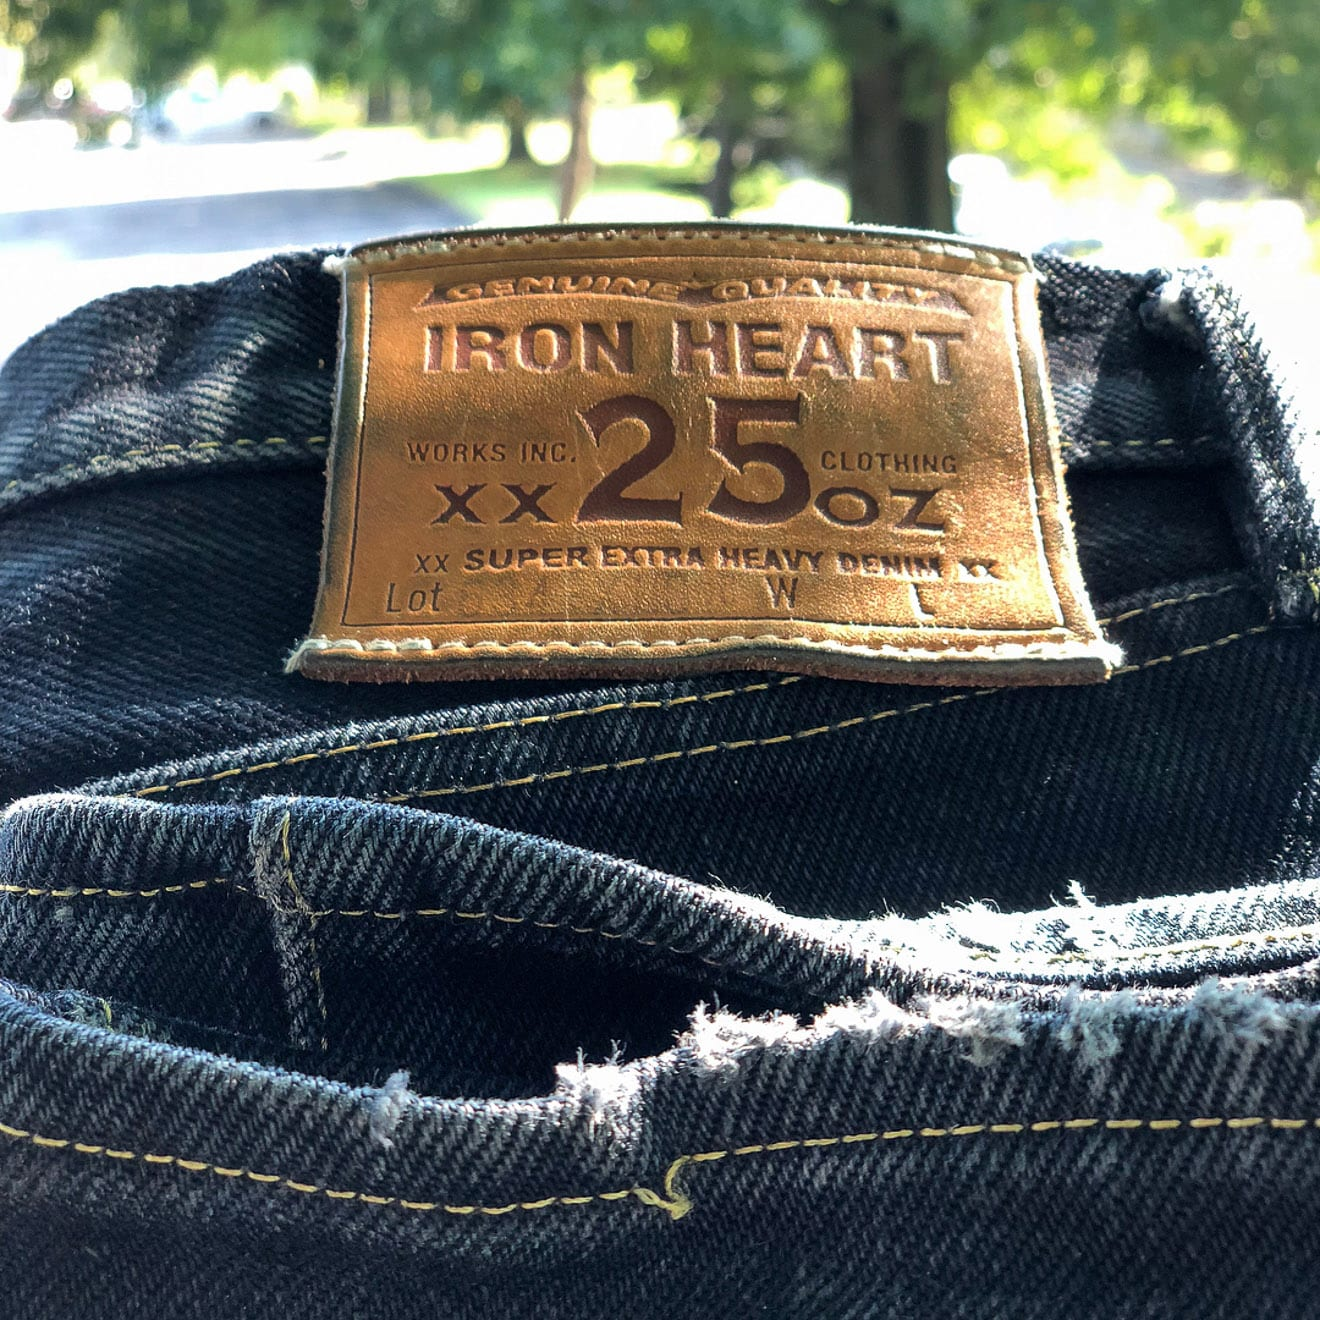 Must-follow Instagrammers. Iron Heart army. heavyweight denim, made in Japan, raw denim, Iron Heart, 25 oz, 25 oz.